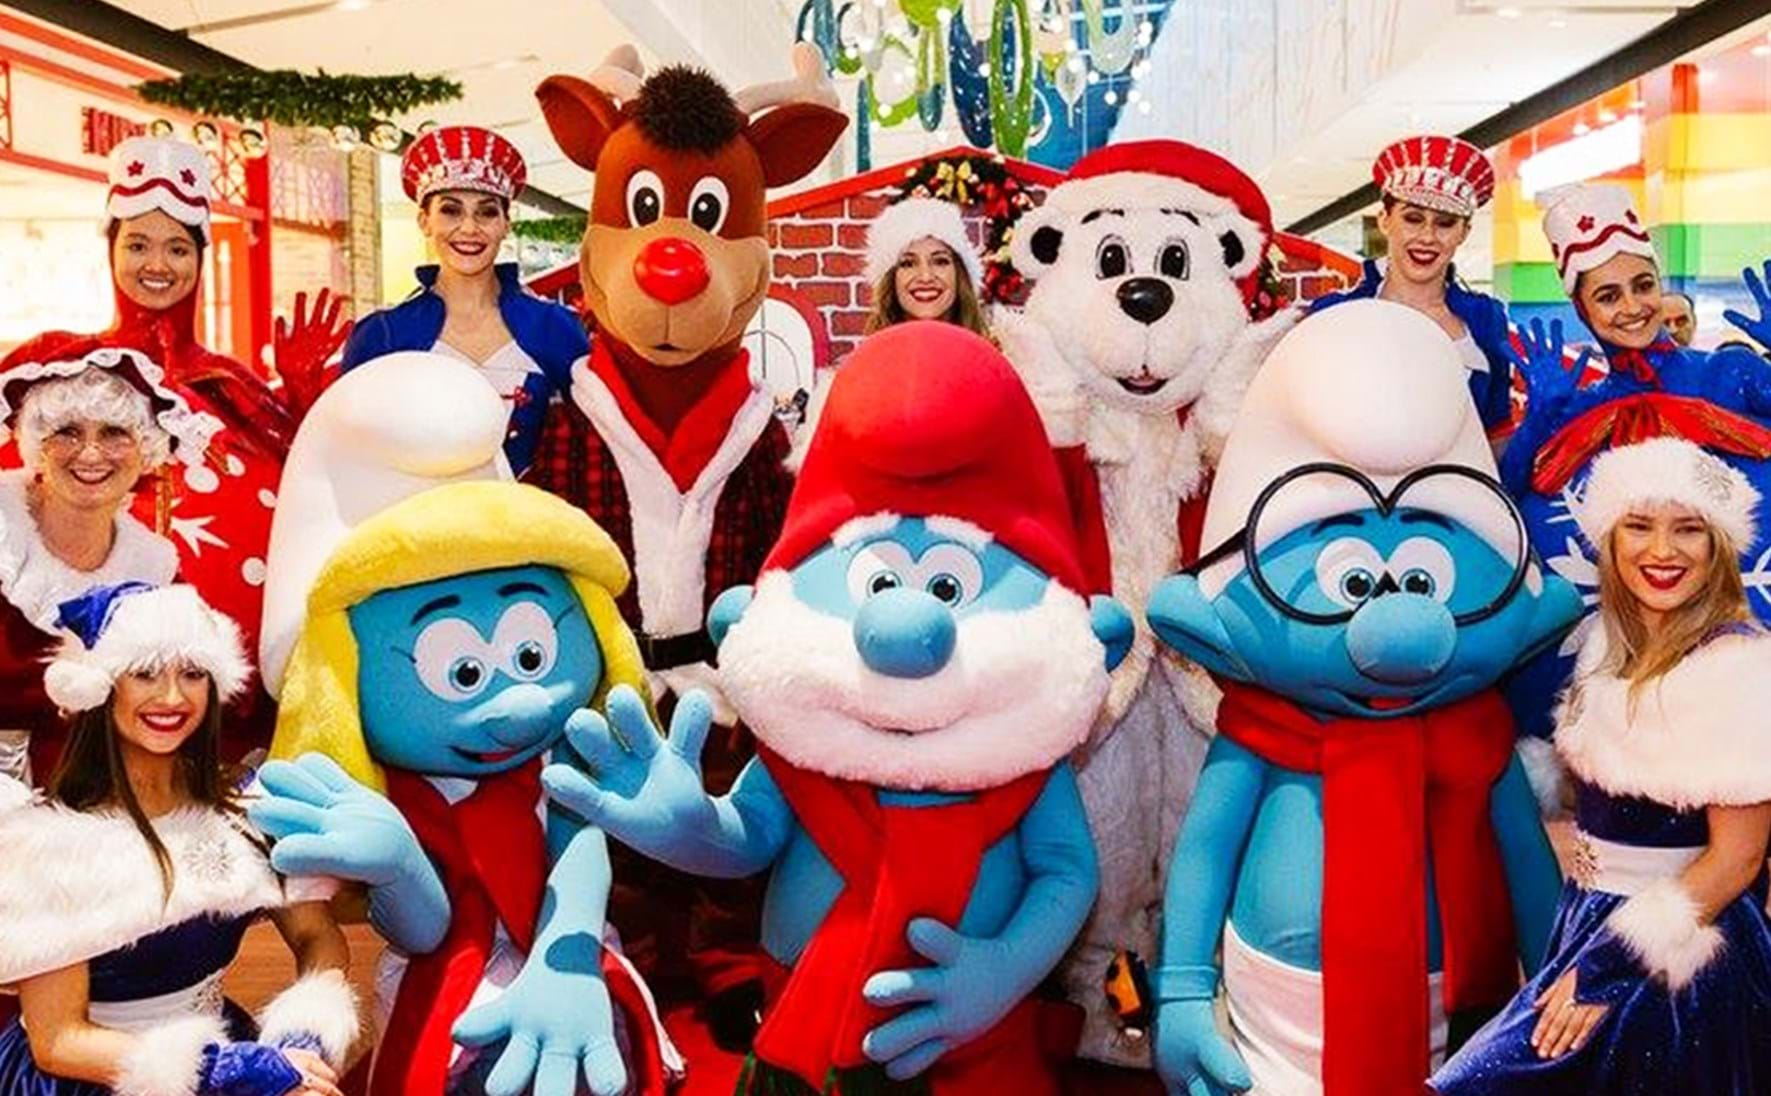 The Smurfs @ Westfield Fountain Gate